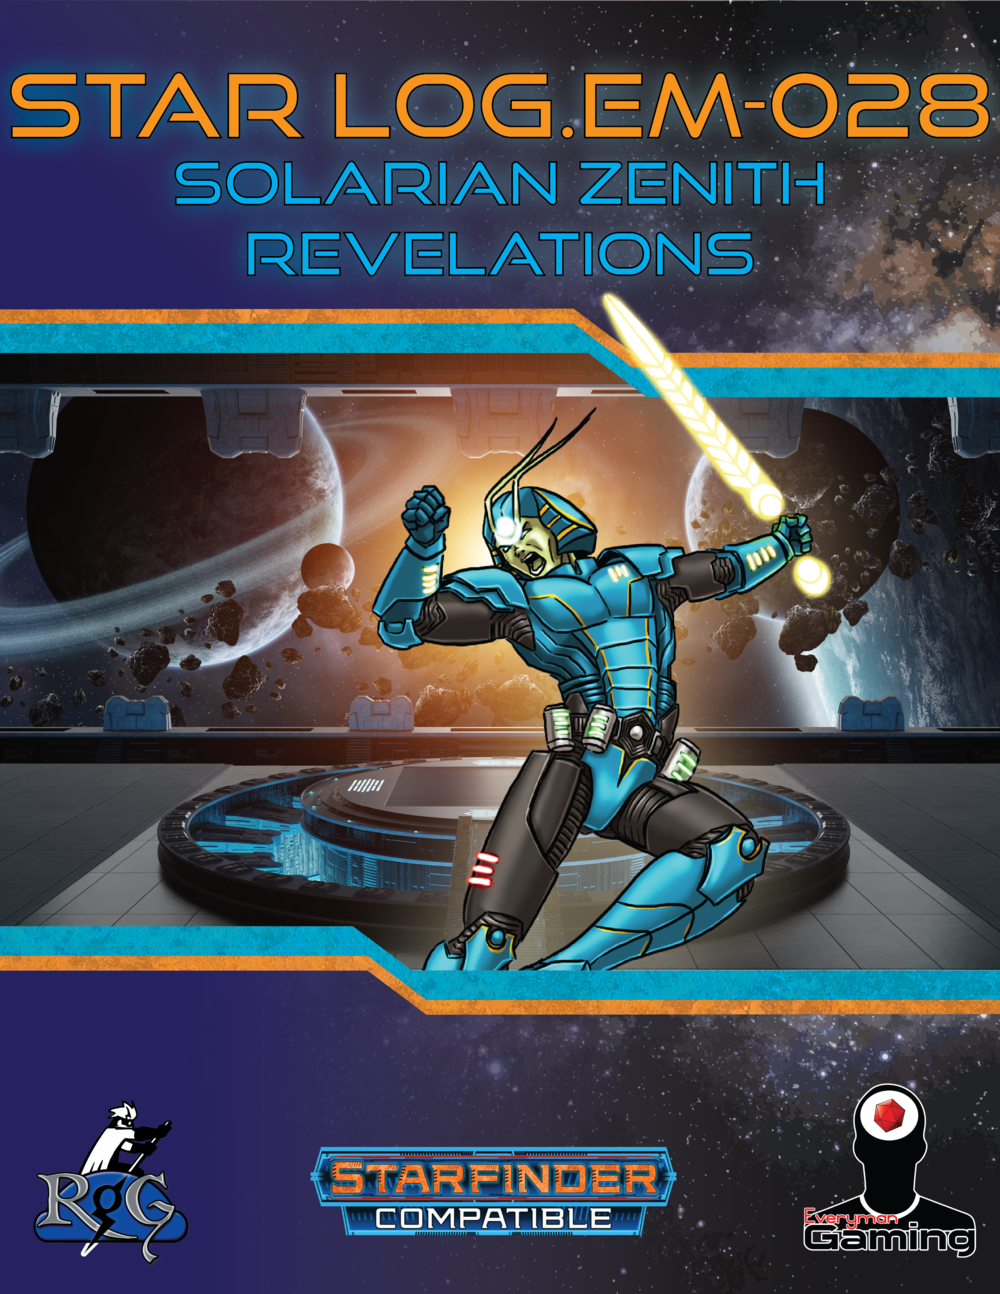 SF028 Solarian Zenith Revelations.png